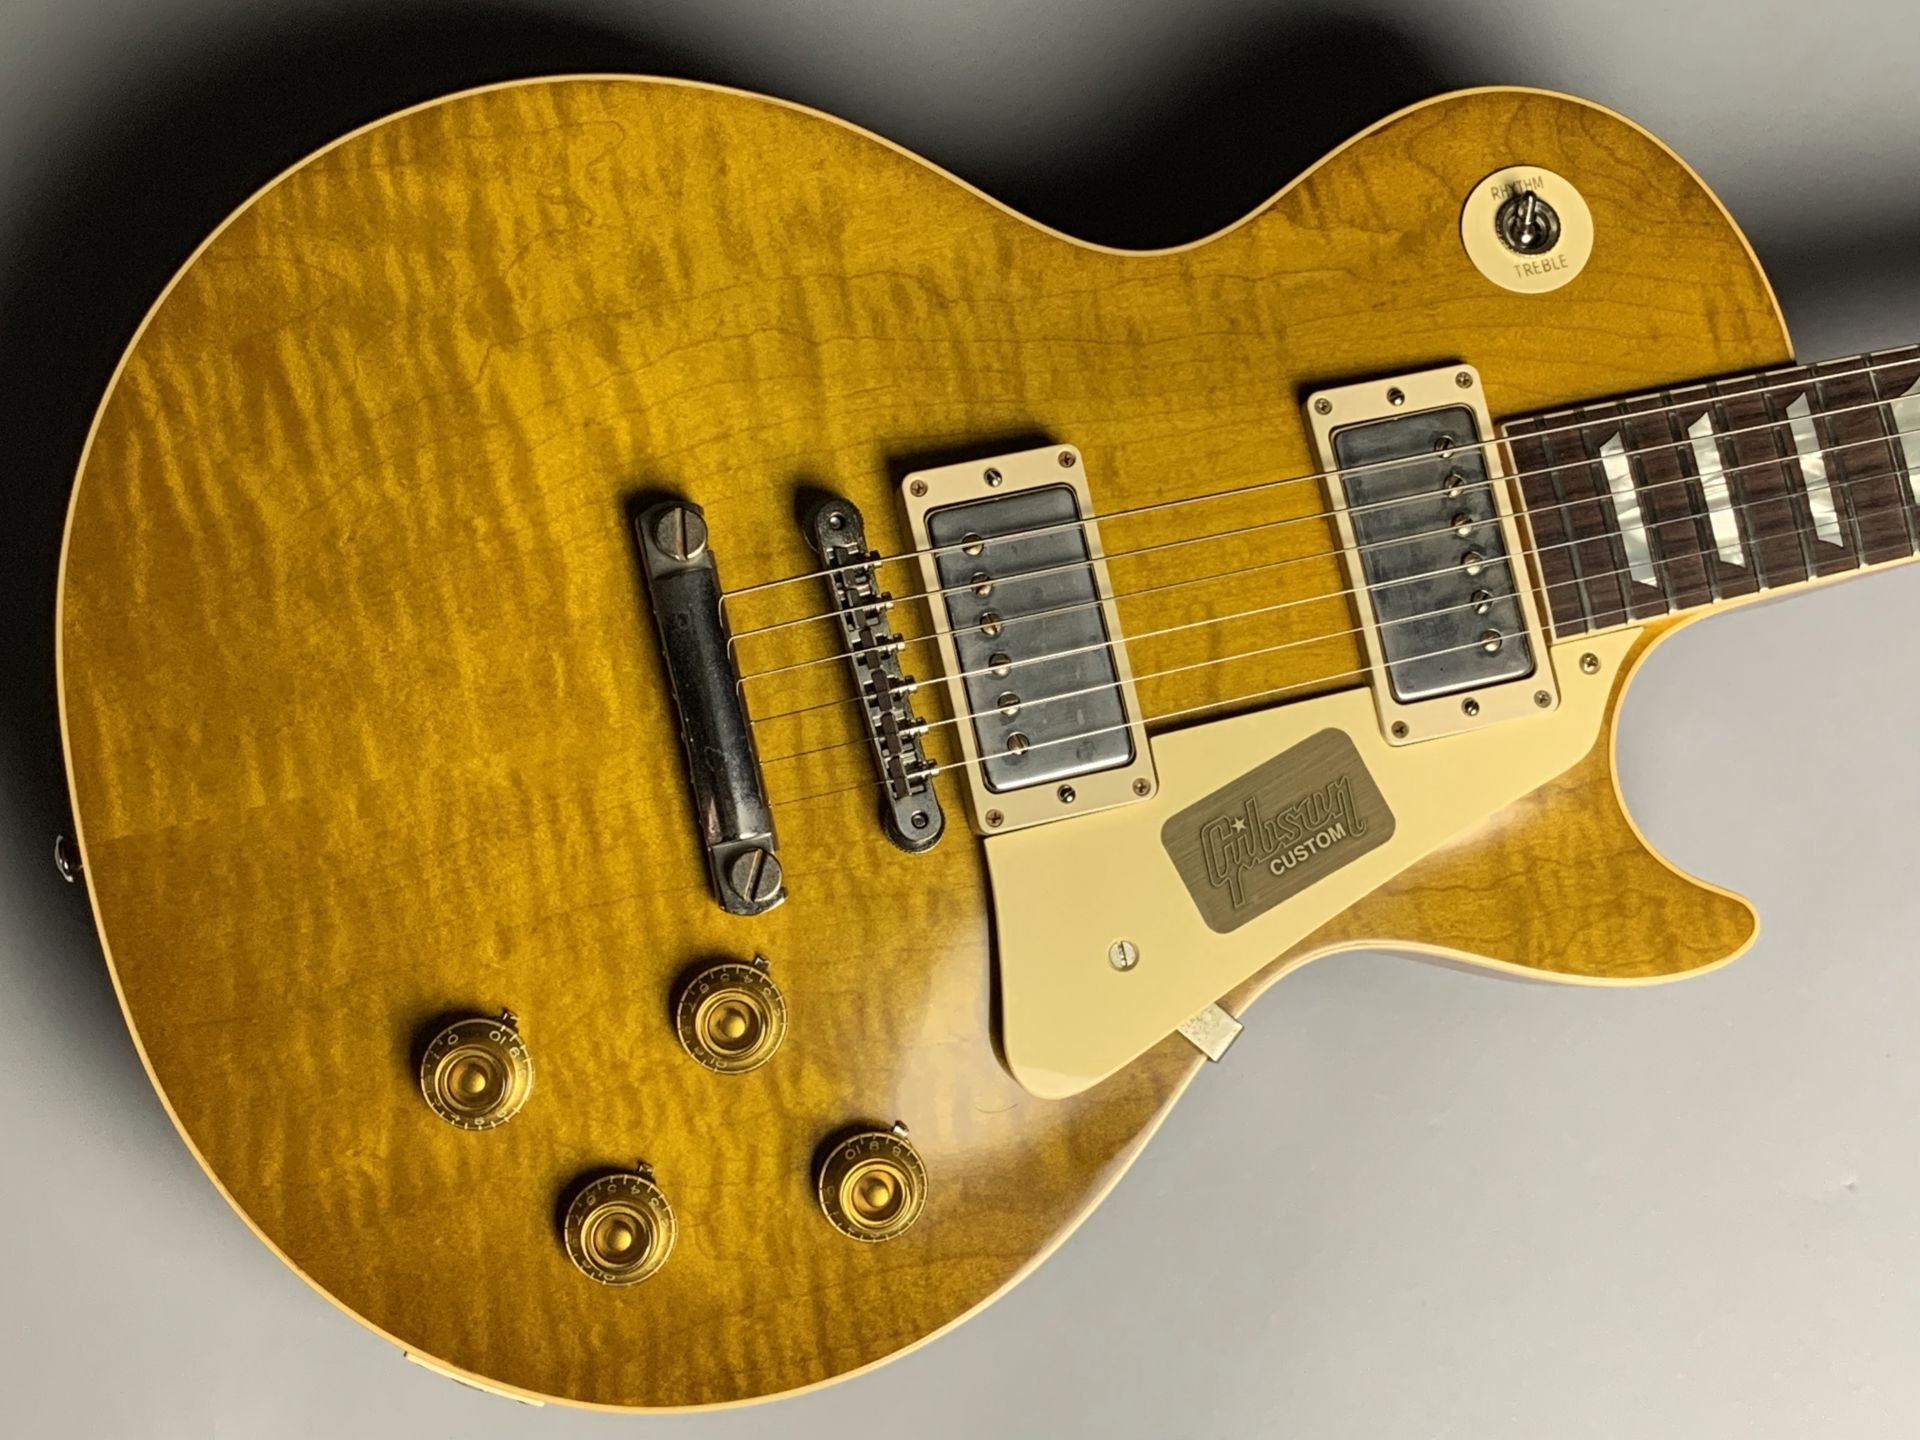 1958 Les Paul HardRock Maple VOS 2017 Limited Run (Dirty Lemon)のボディトップ-アップ画像